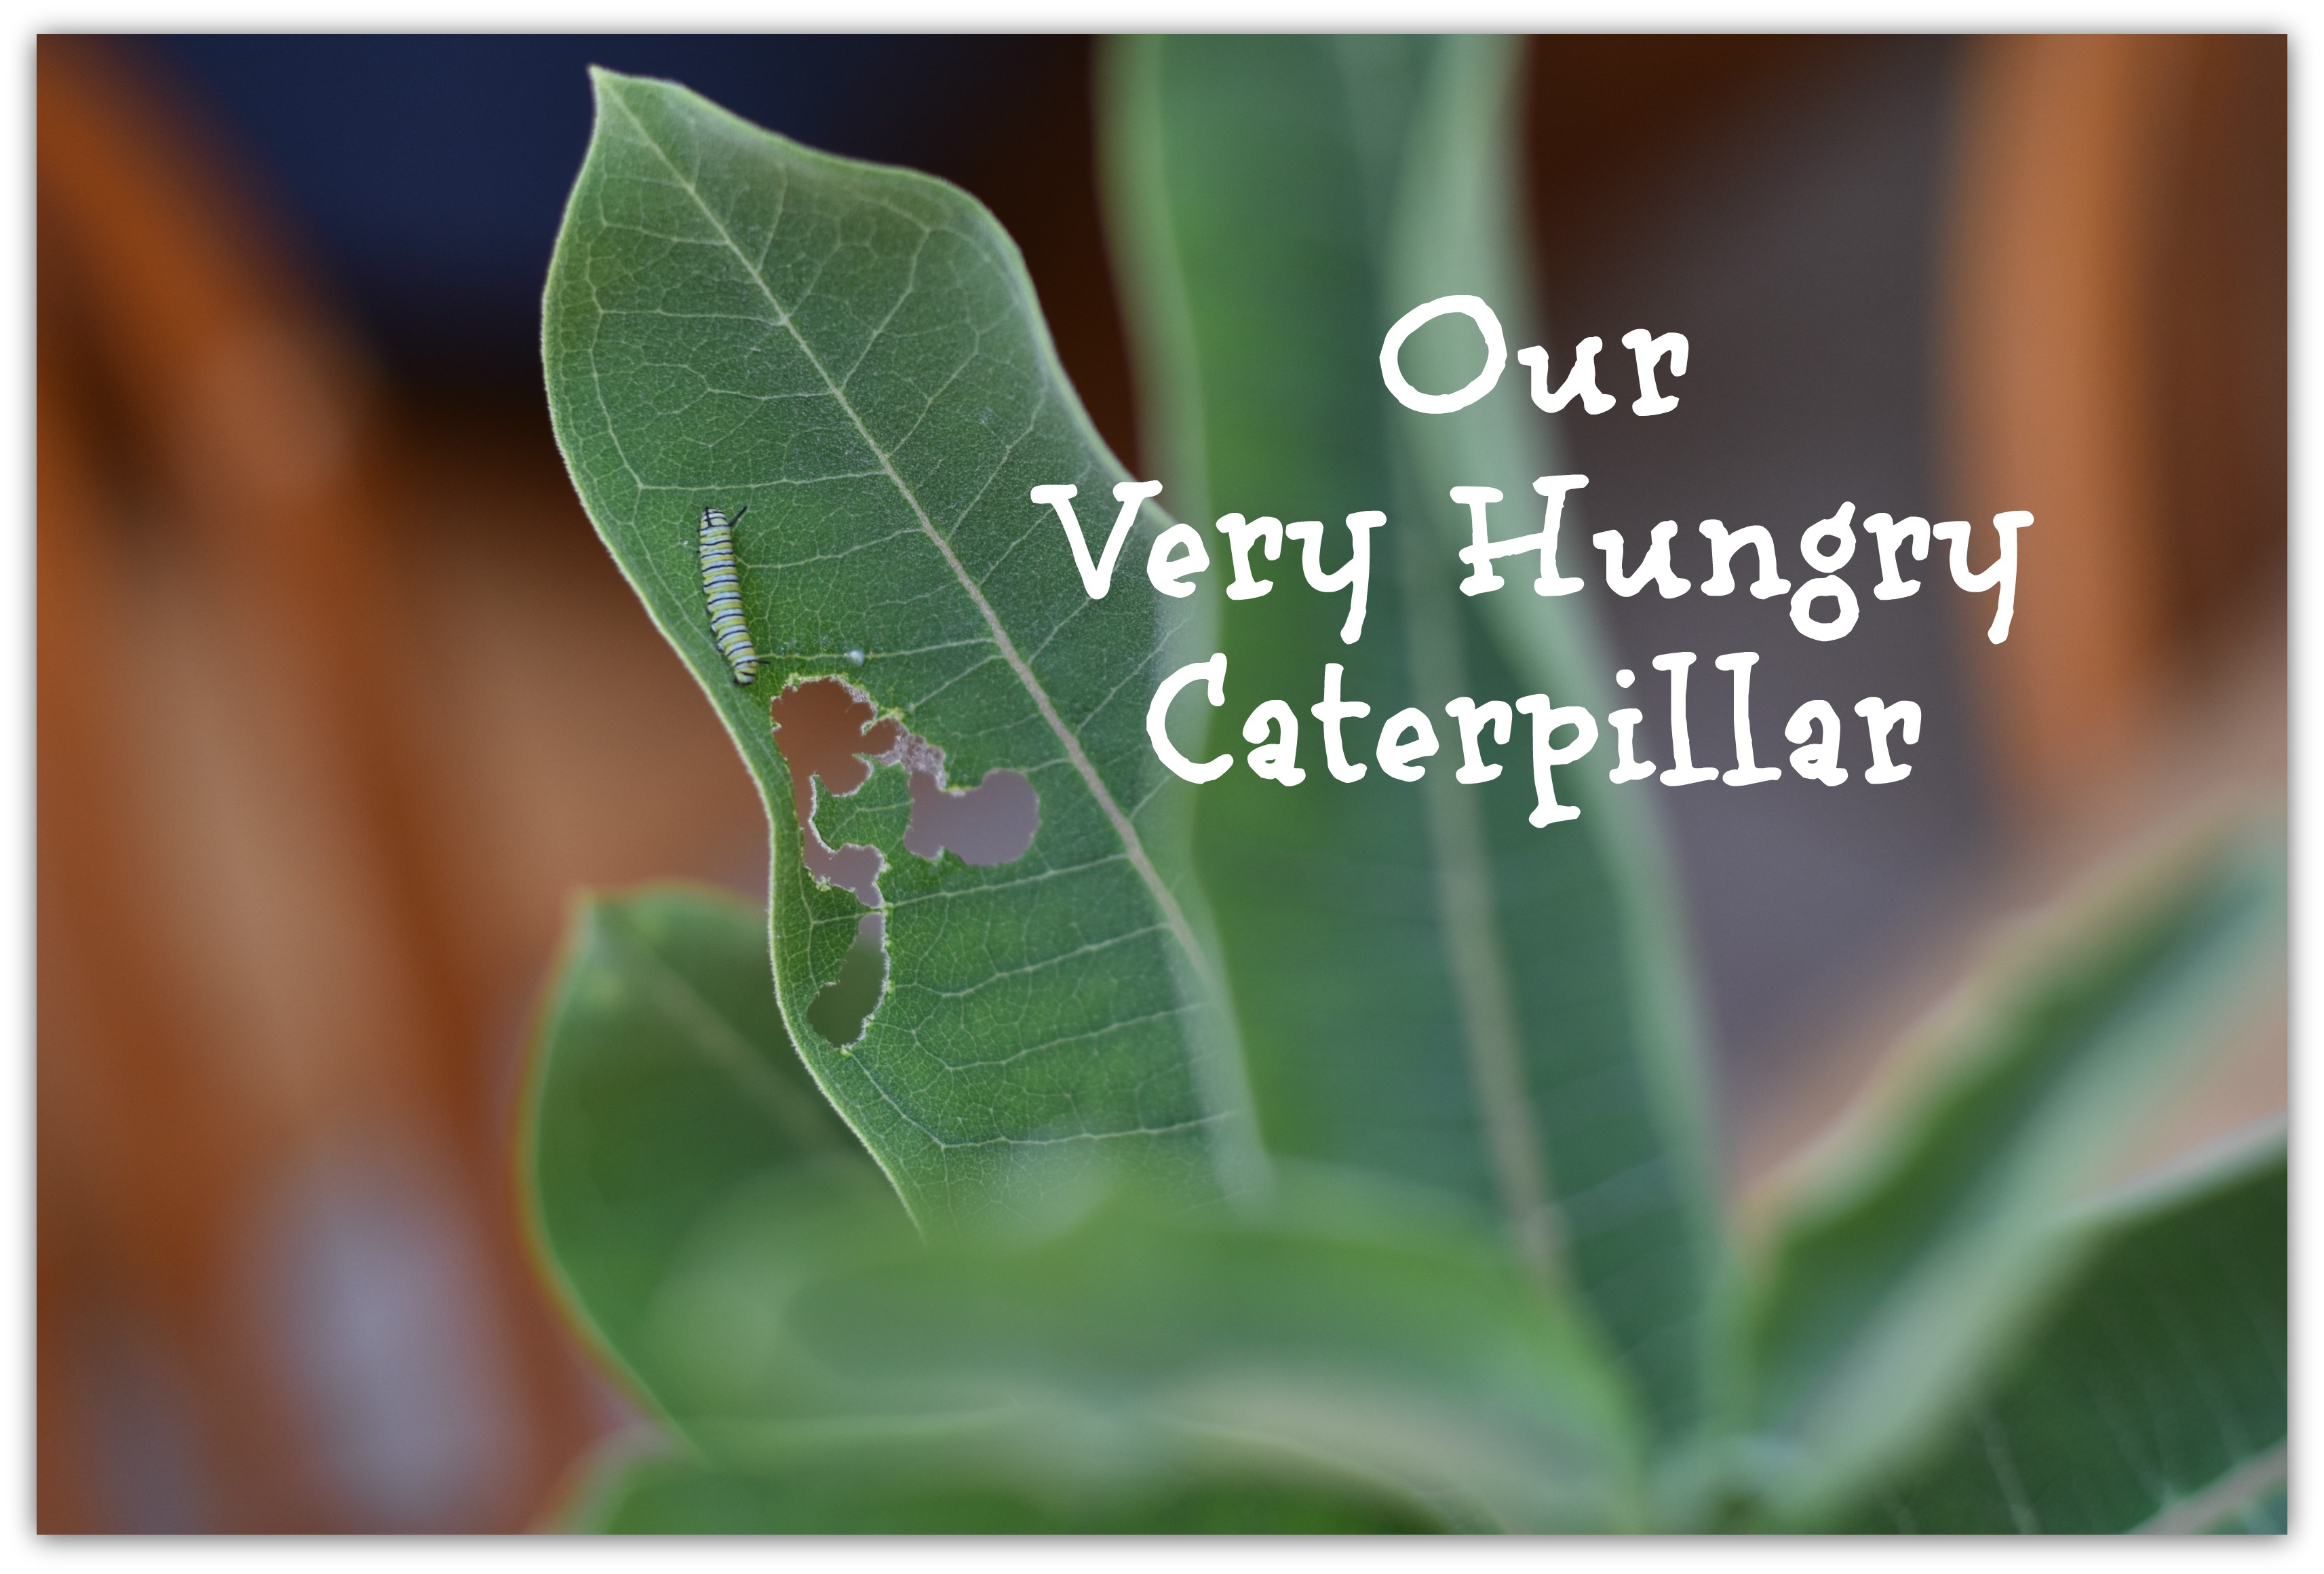 Our Very Hungry Caterpillar